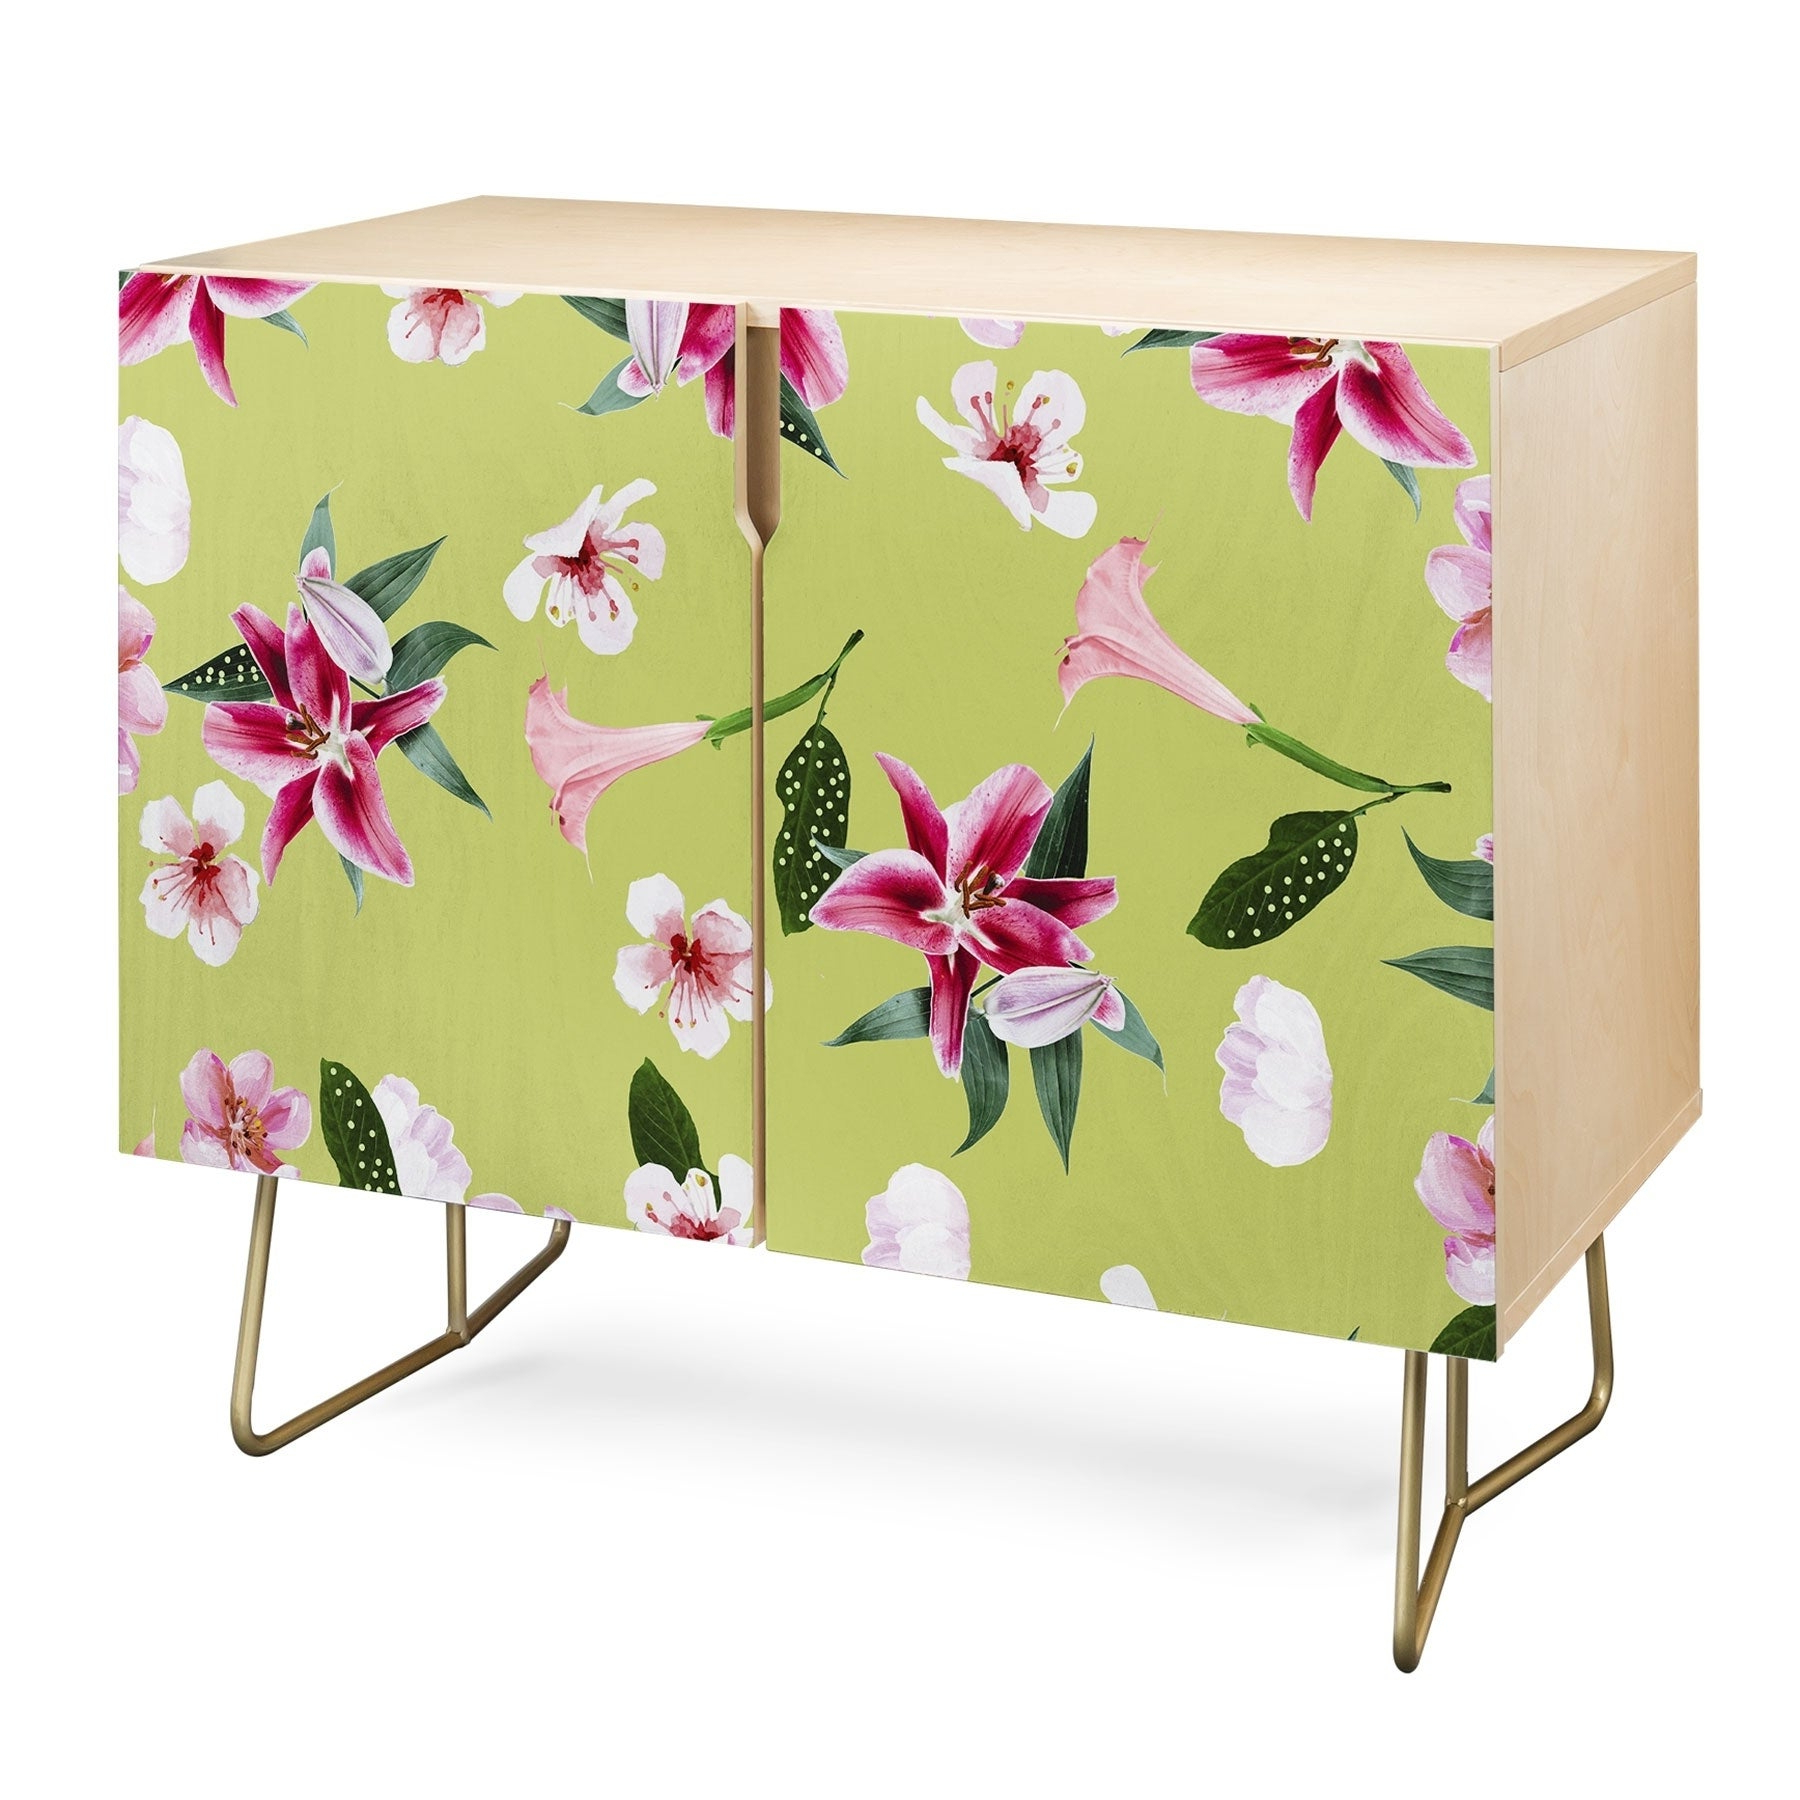 Deny Designs Oenomel Credenza (Birch Or Walnut, 2 Leg Options) Within Oenomel Credenzas (View 14 of 20)